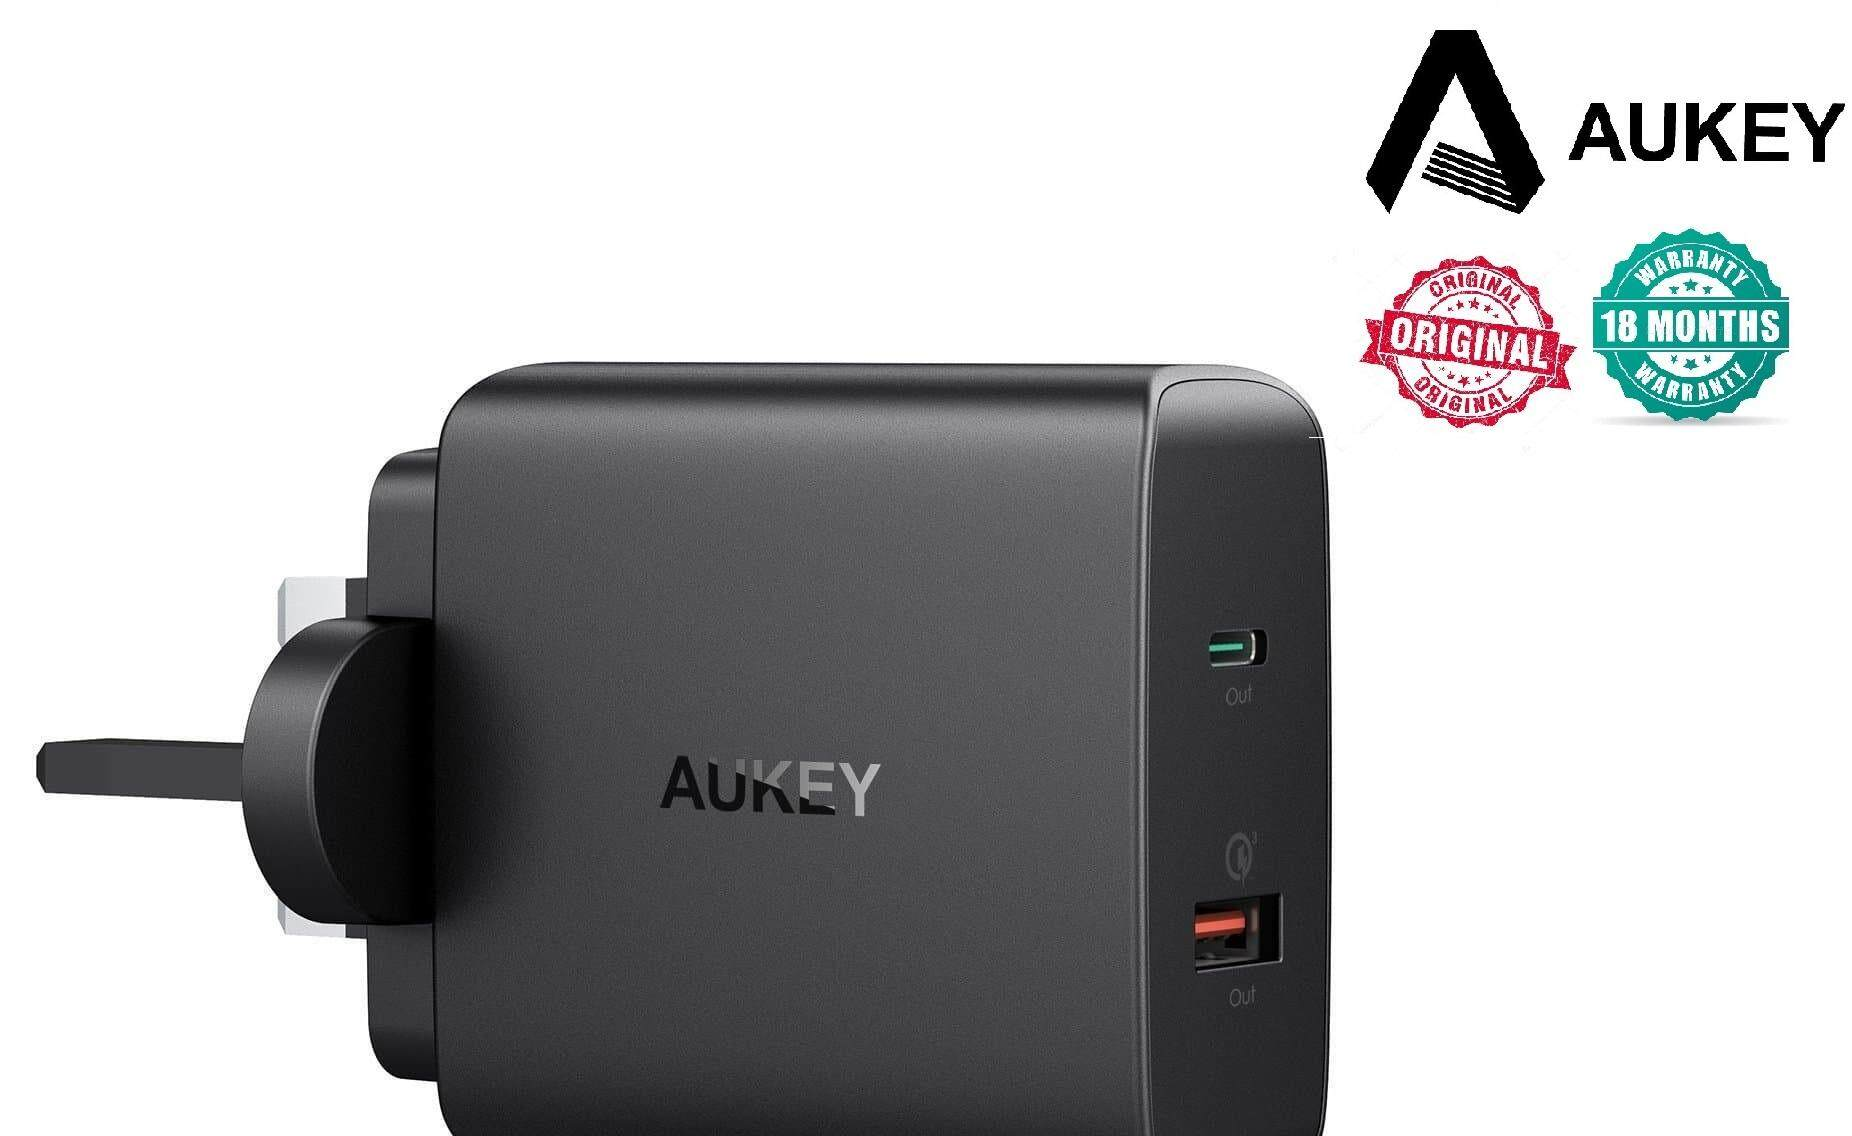 Sell Turbo Quick Charge Cheapest Best Quality My Store Aukey Pa U28 20 Charger 18w Fastcharging Y11 48w Power Delivery 30 Usb C With 30myr159 Myr 159